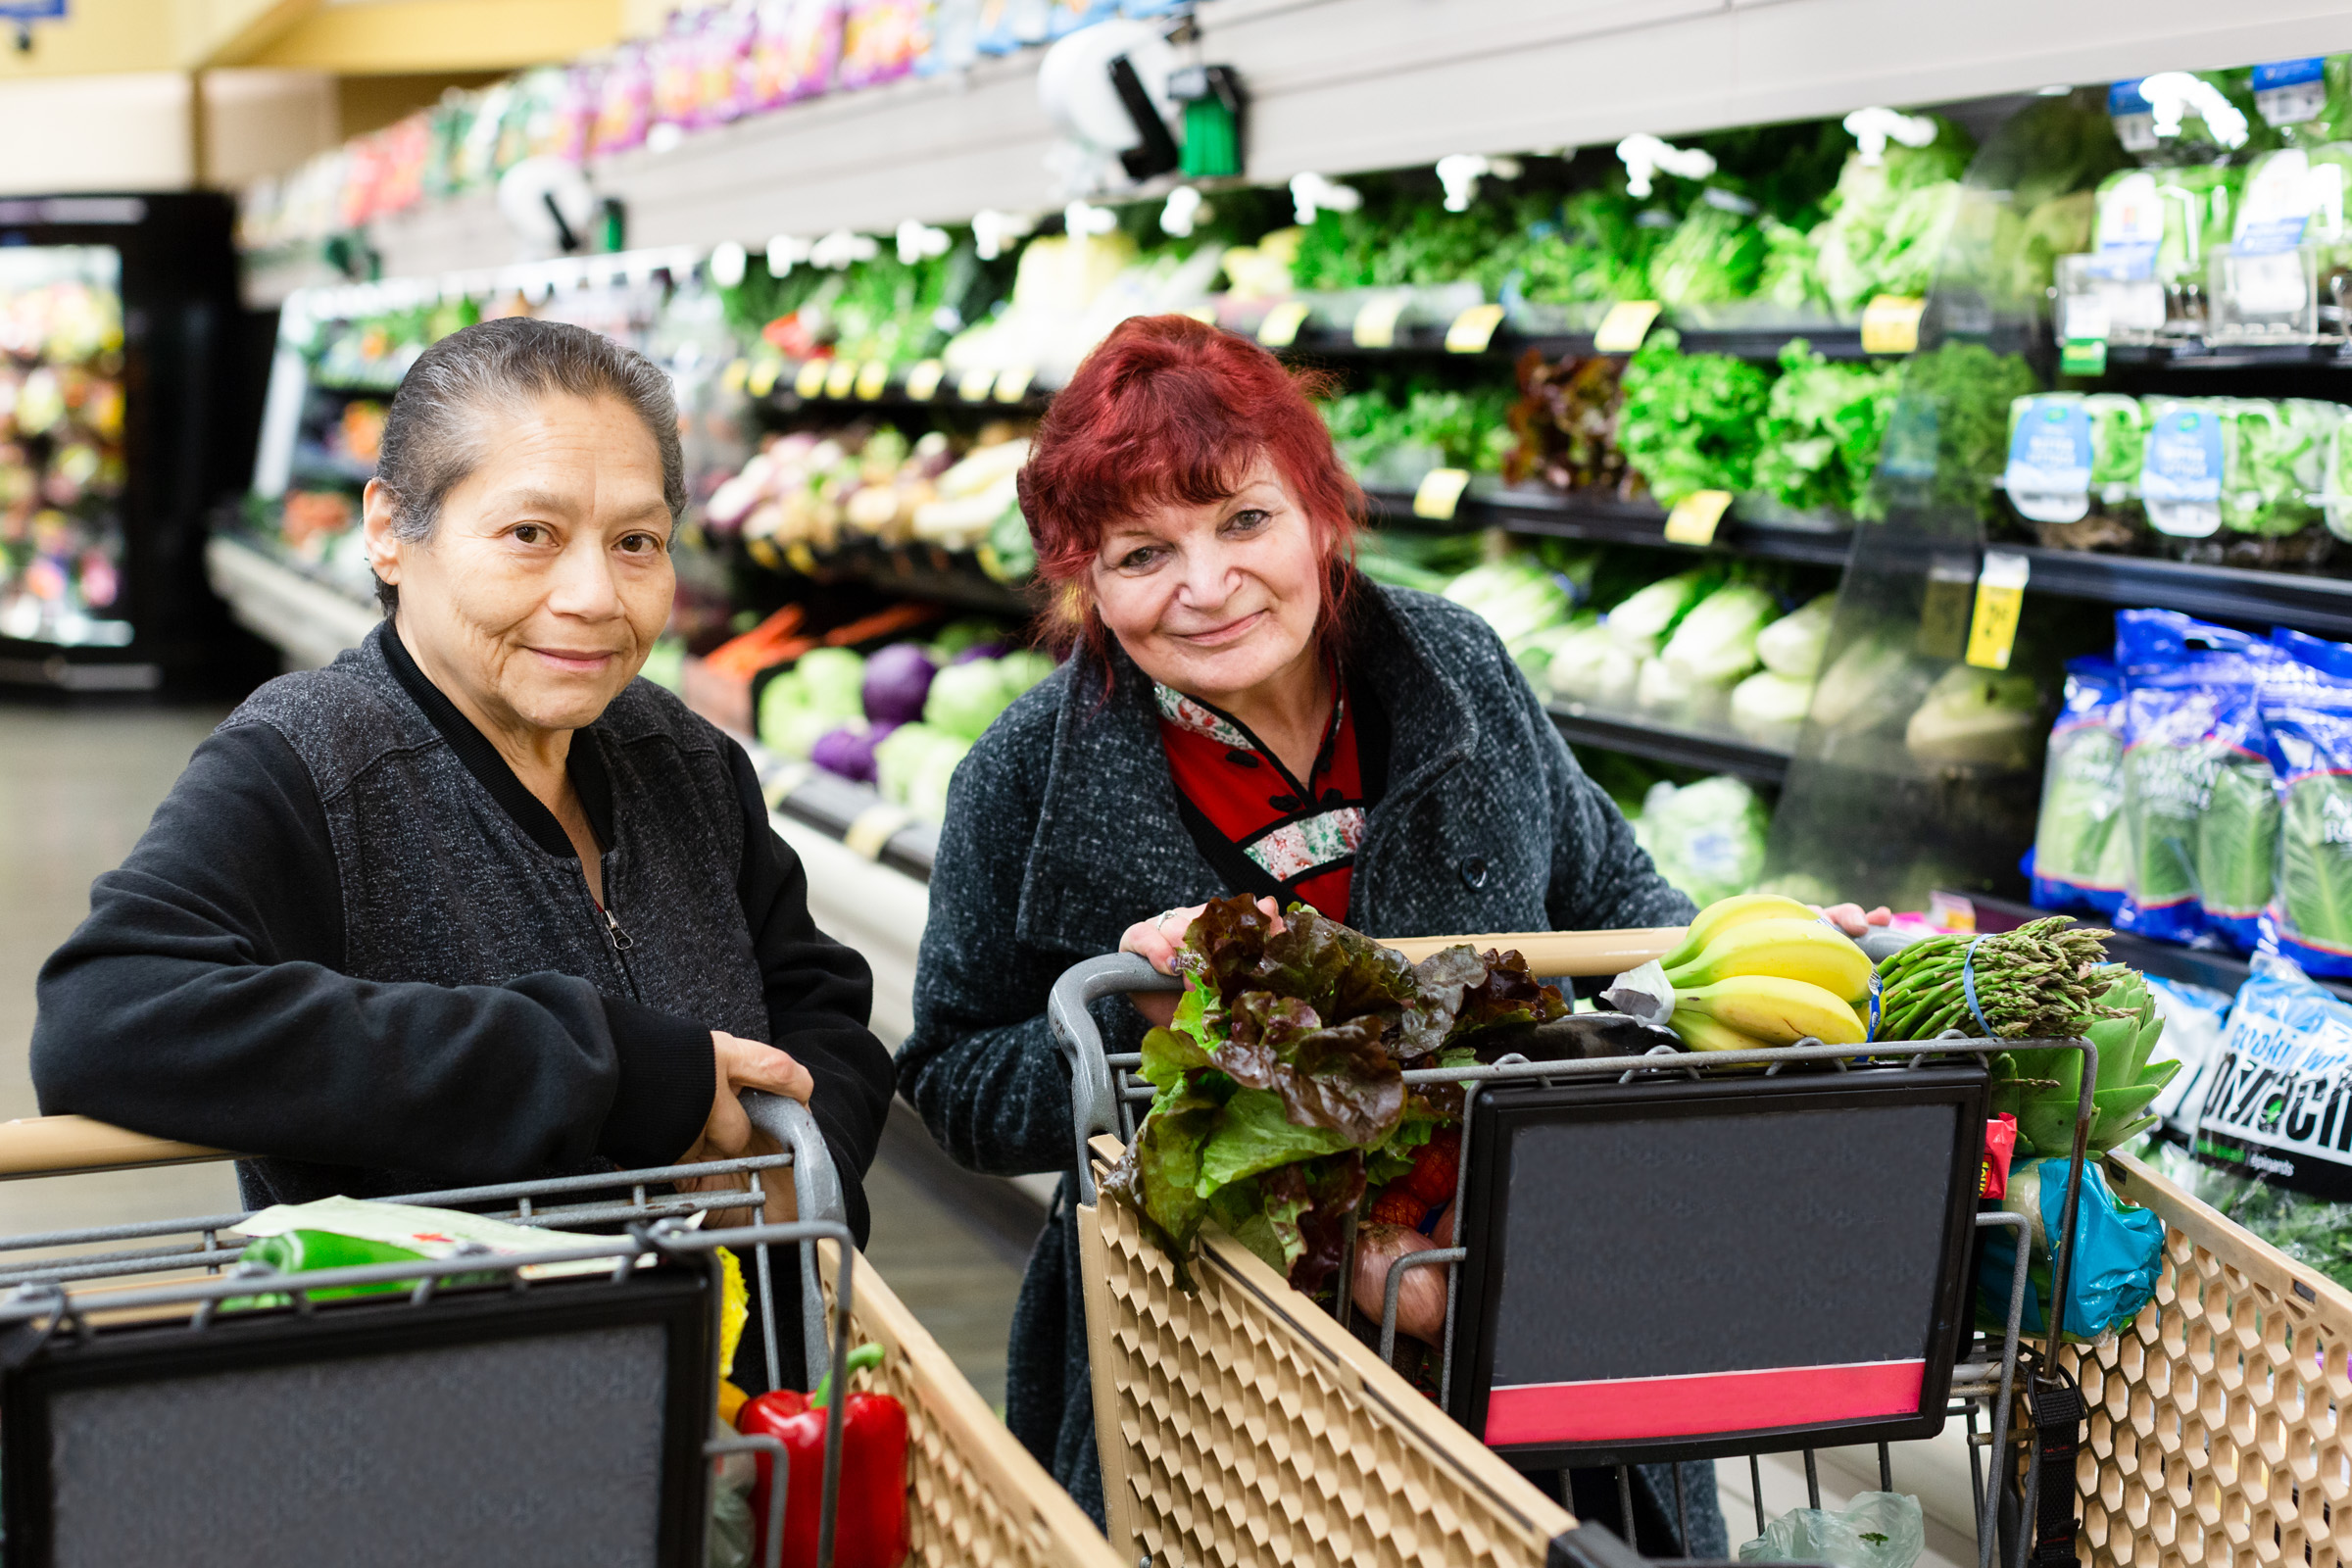 Seniors shopping for produce together